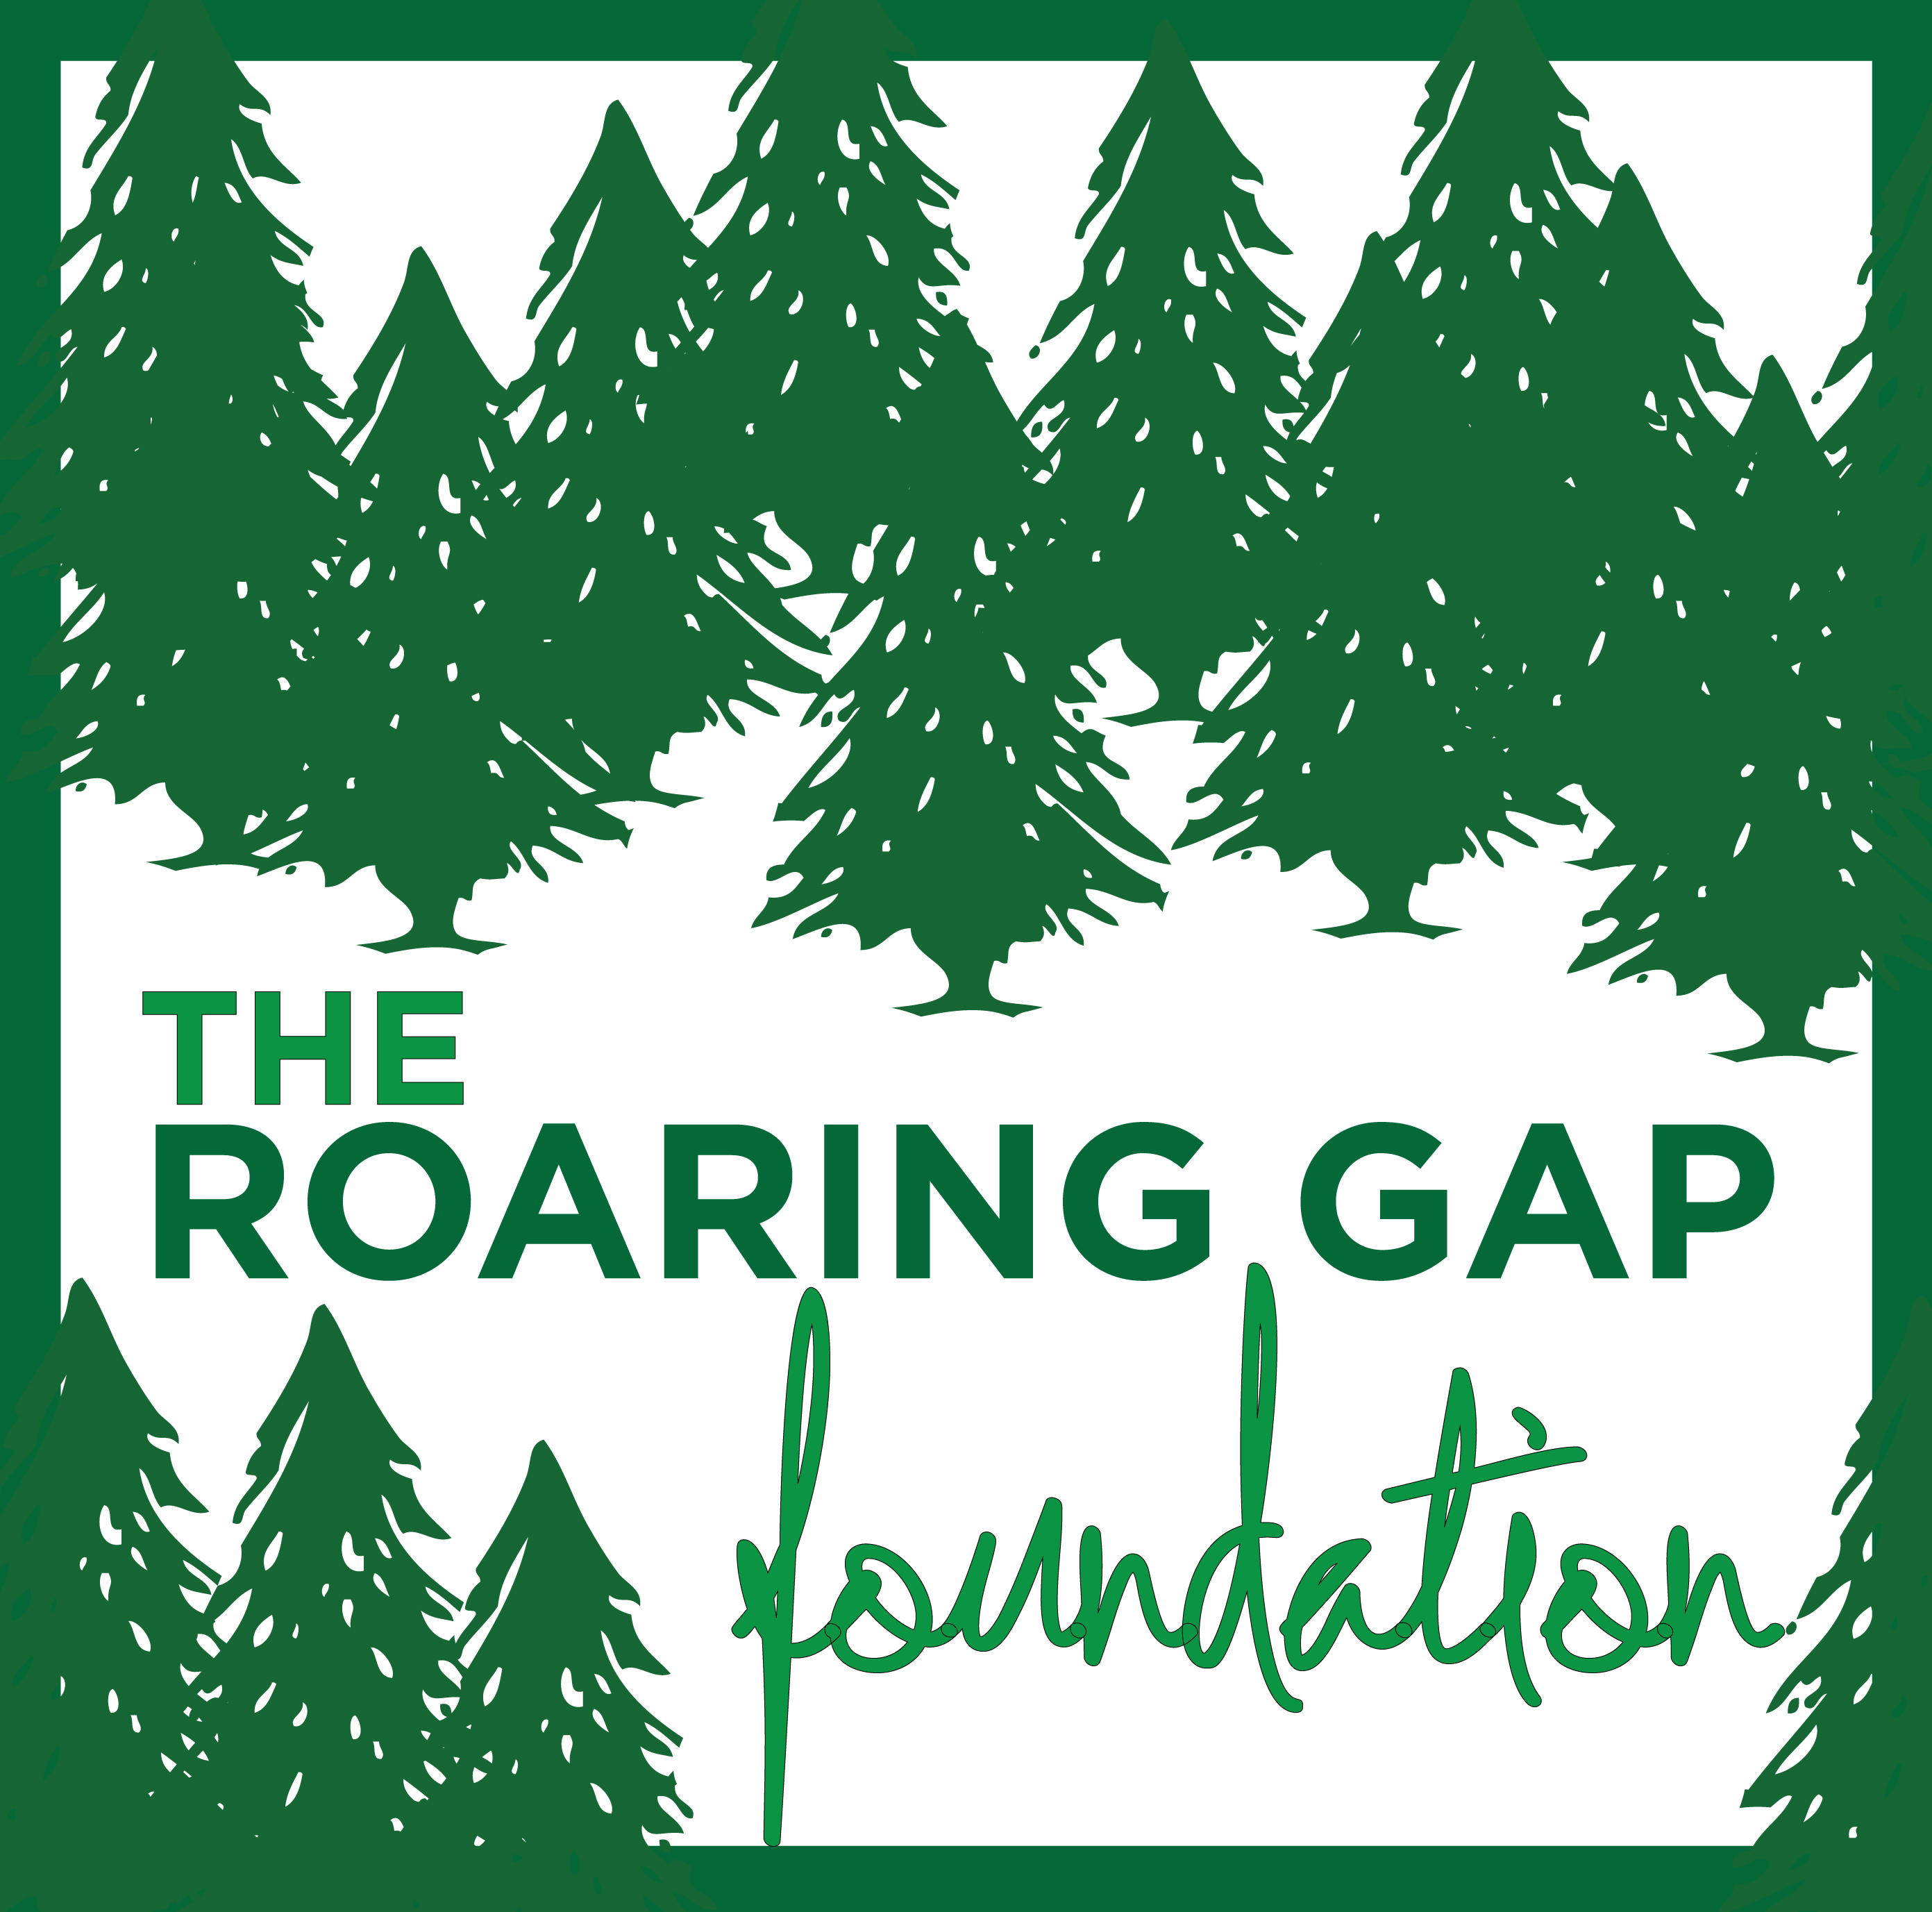 Roaring Gap Foundation